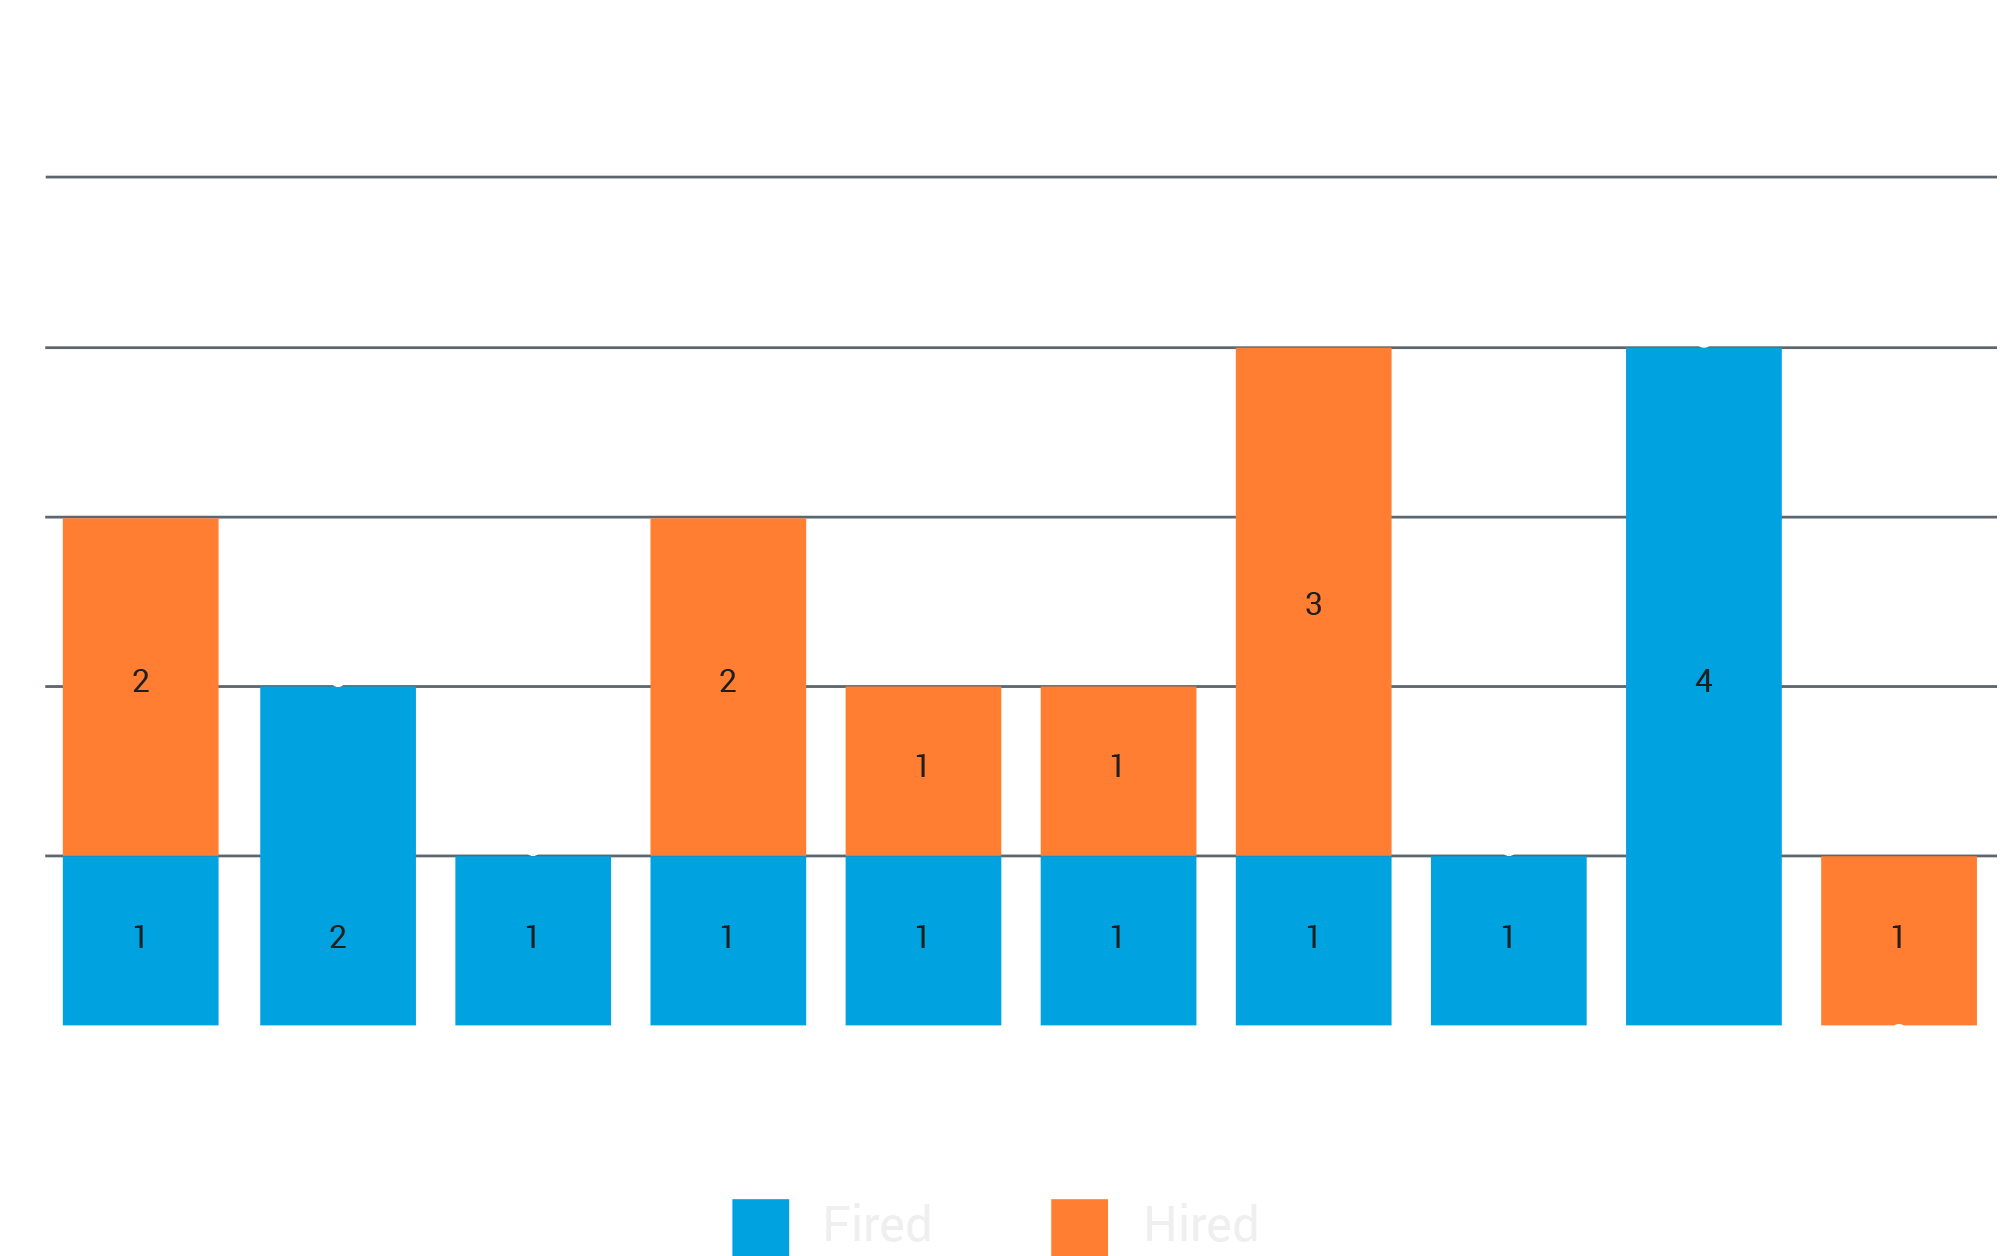 Changes in NFL Offensive Coordinators and Defensive Coordinators of Color